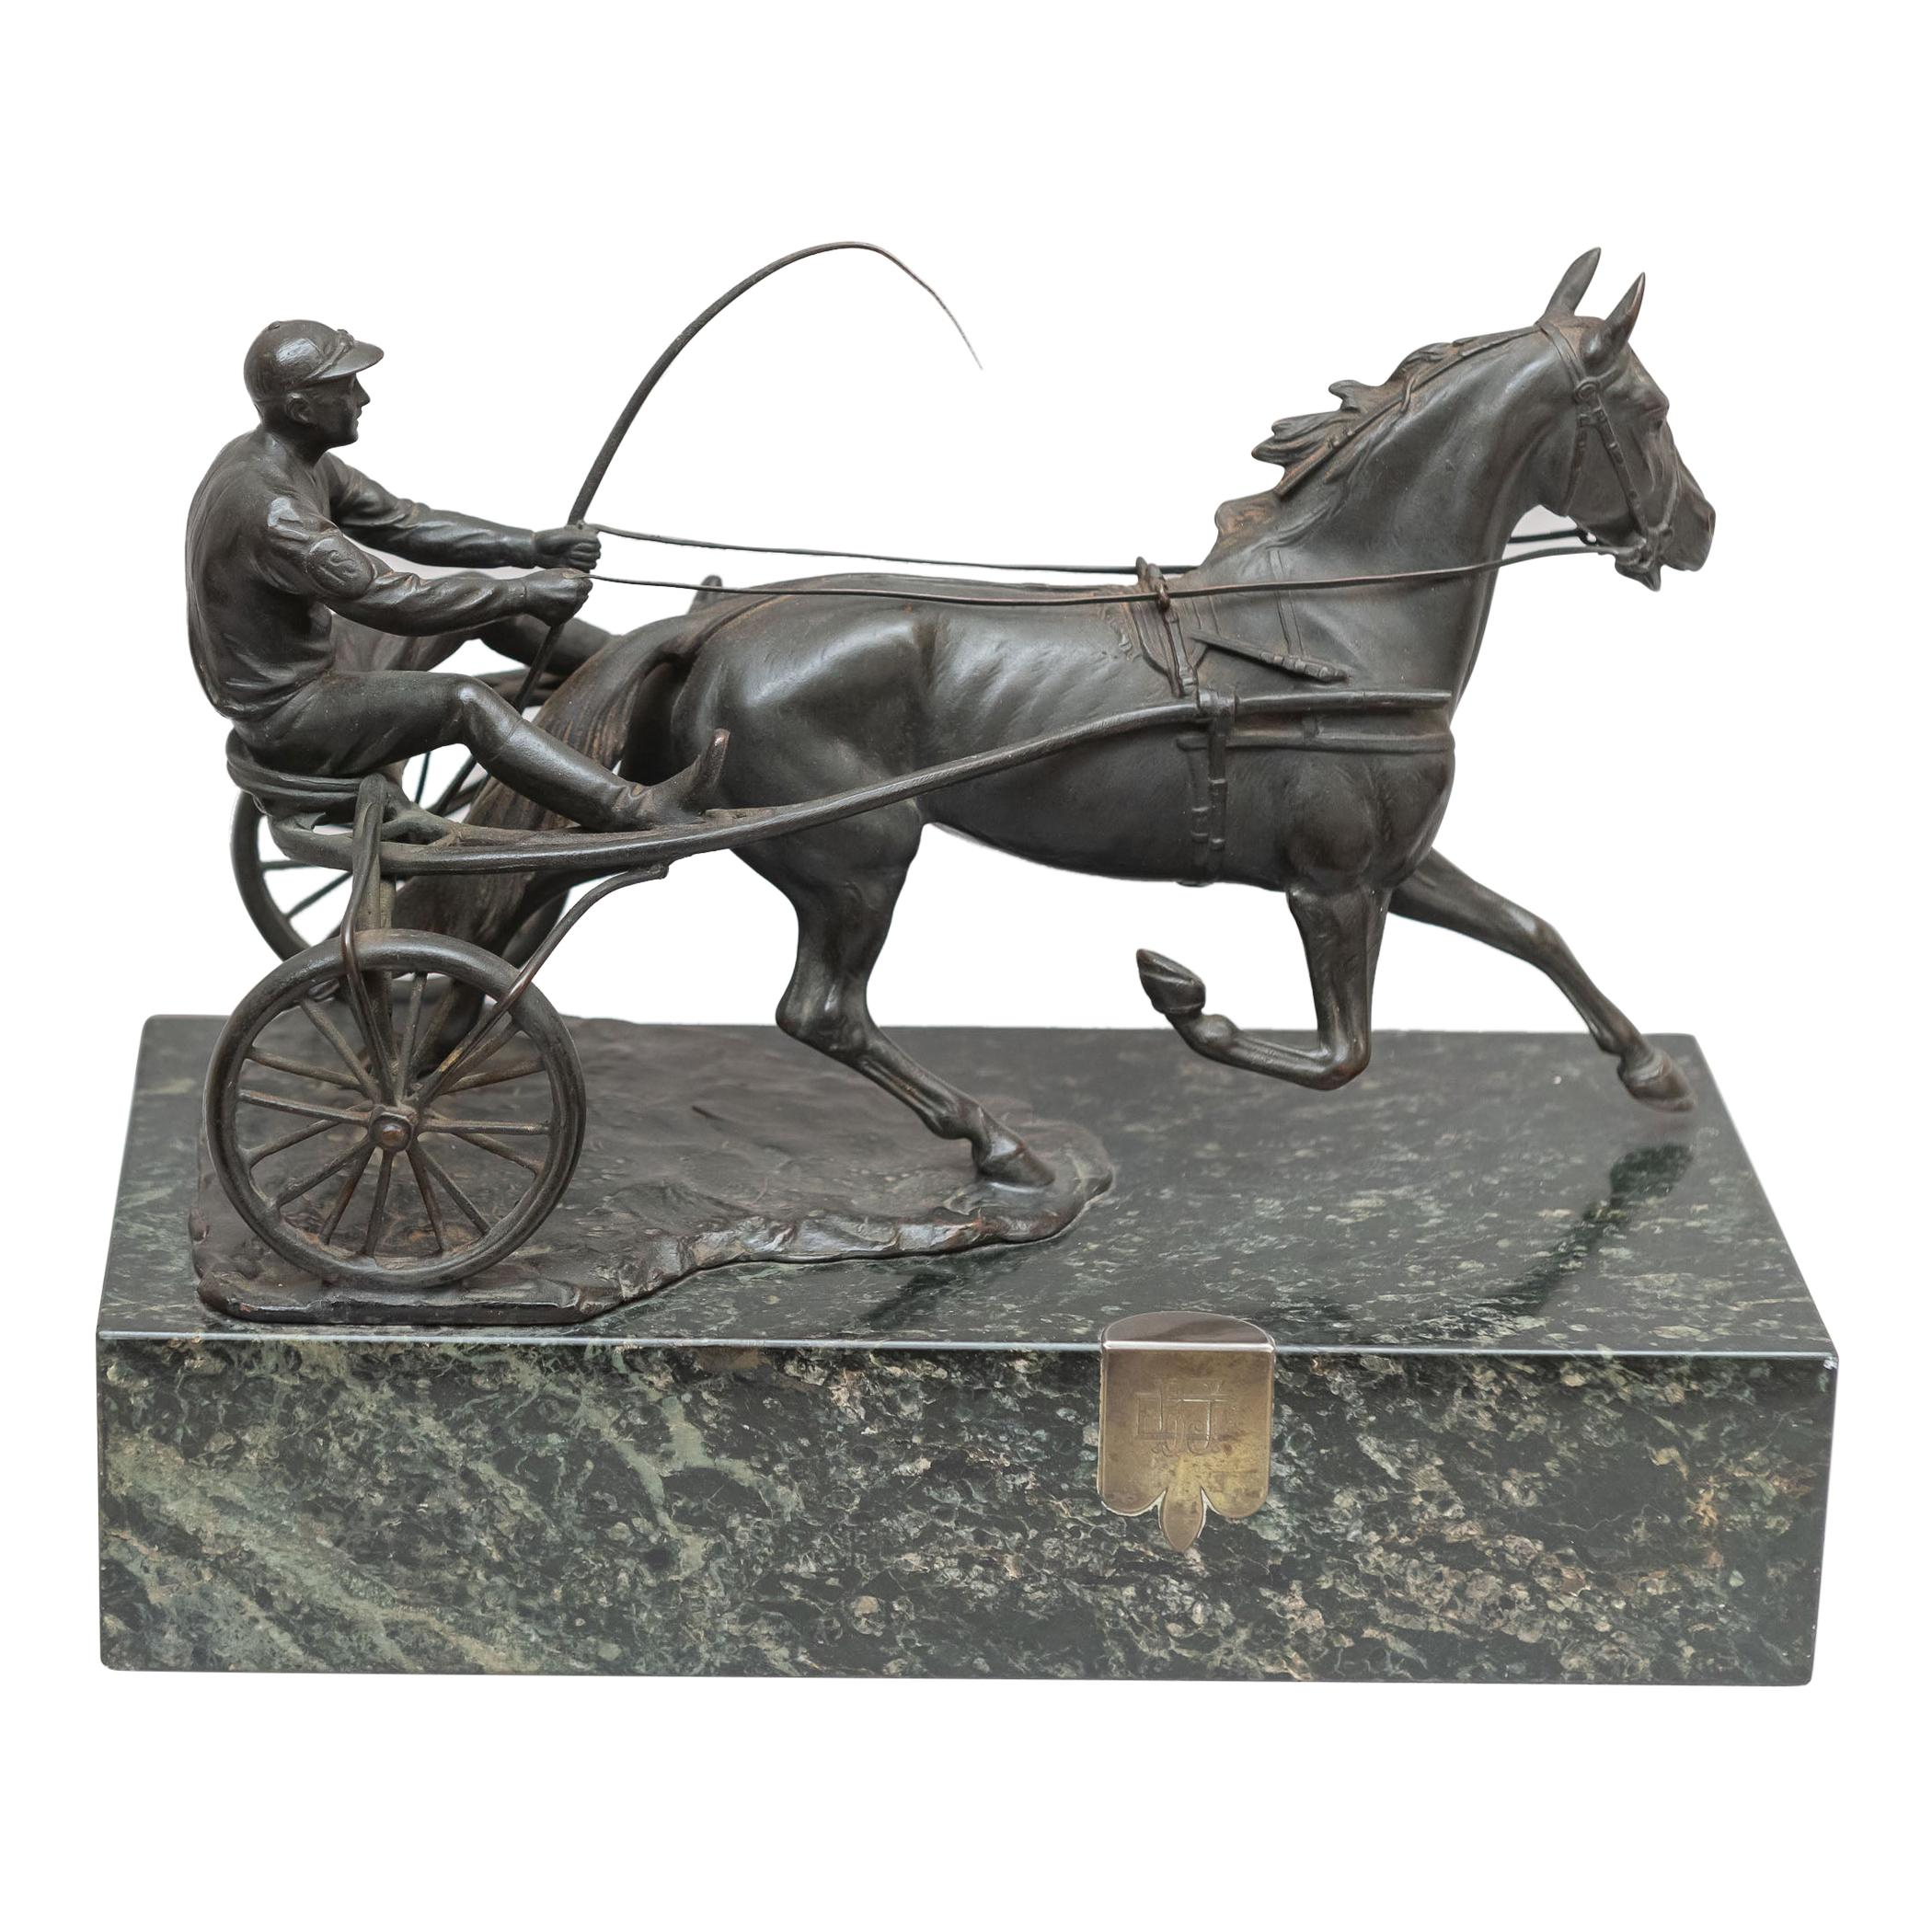 Austrian Bronze Group, Harness Race Driver and Horse, Artist Signed, circa 1920